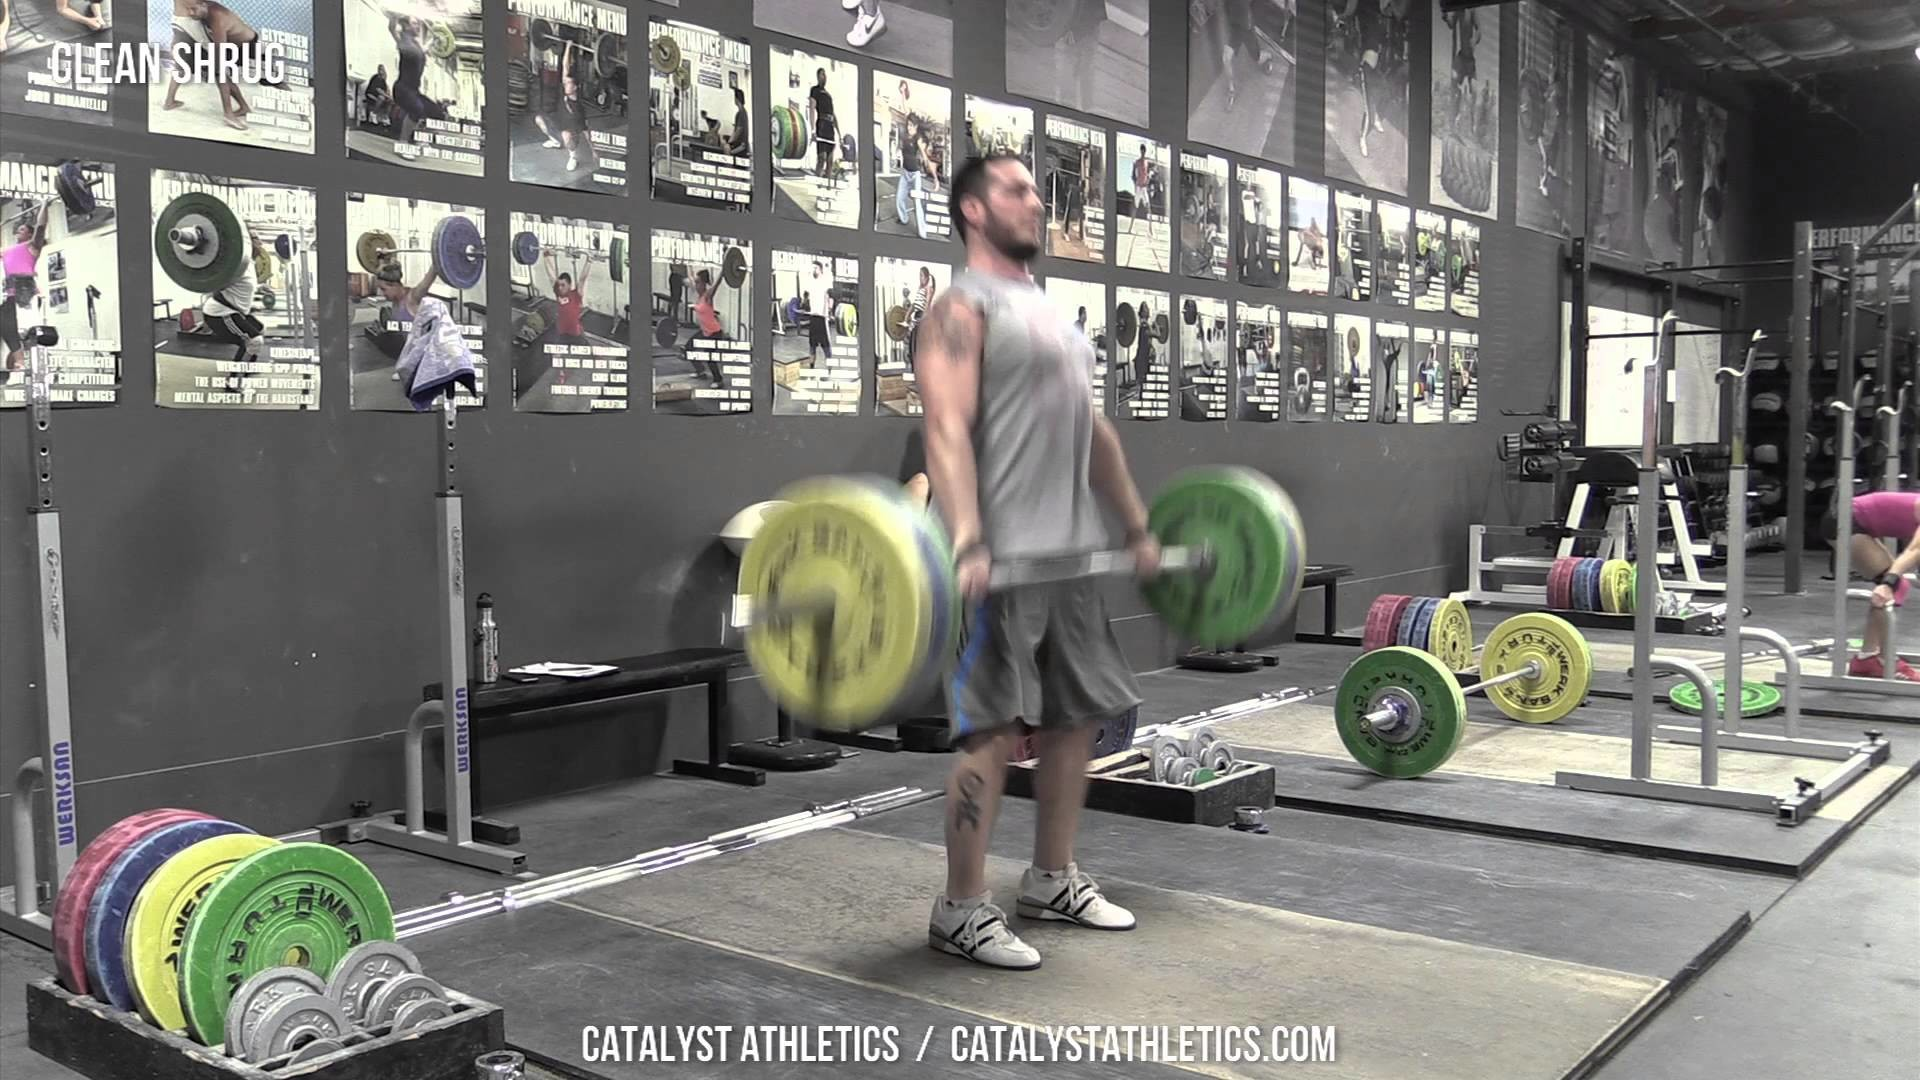 Clean Shrug – Olympic Weightlifting Exercise Library – Catalyst Athletics